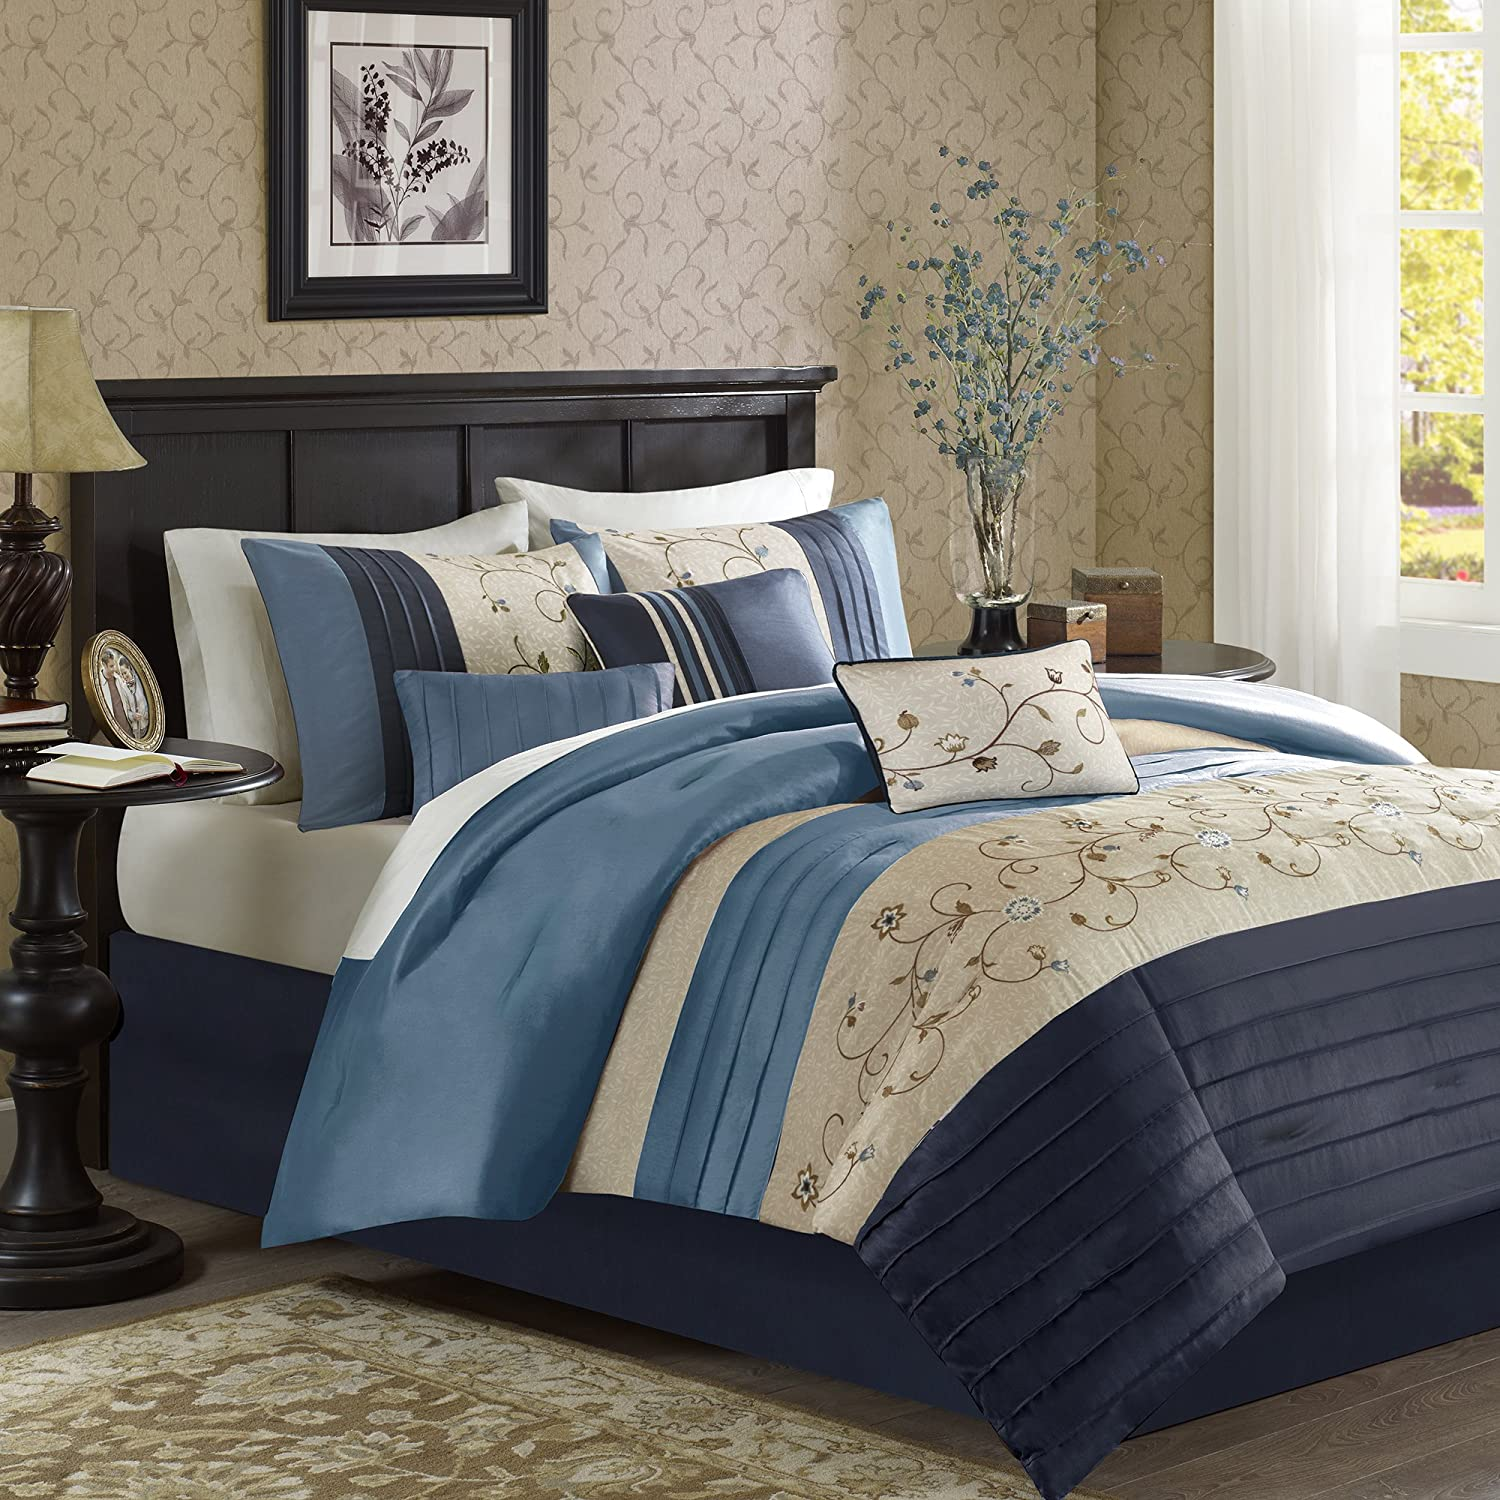 Madison Park Serene King Size Bed Comforter Set Bed in A Bag - Navy, Embroidered – 7 Pieces Bedding Sets – Faux Silk Bedroom Comforters